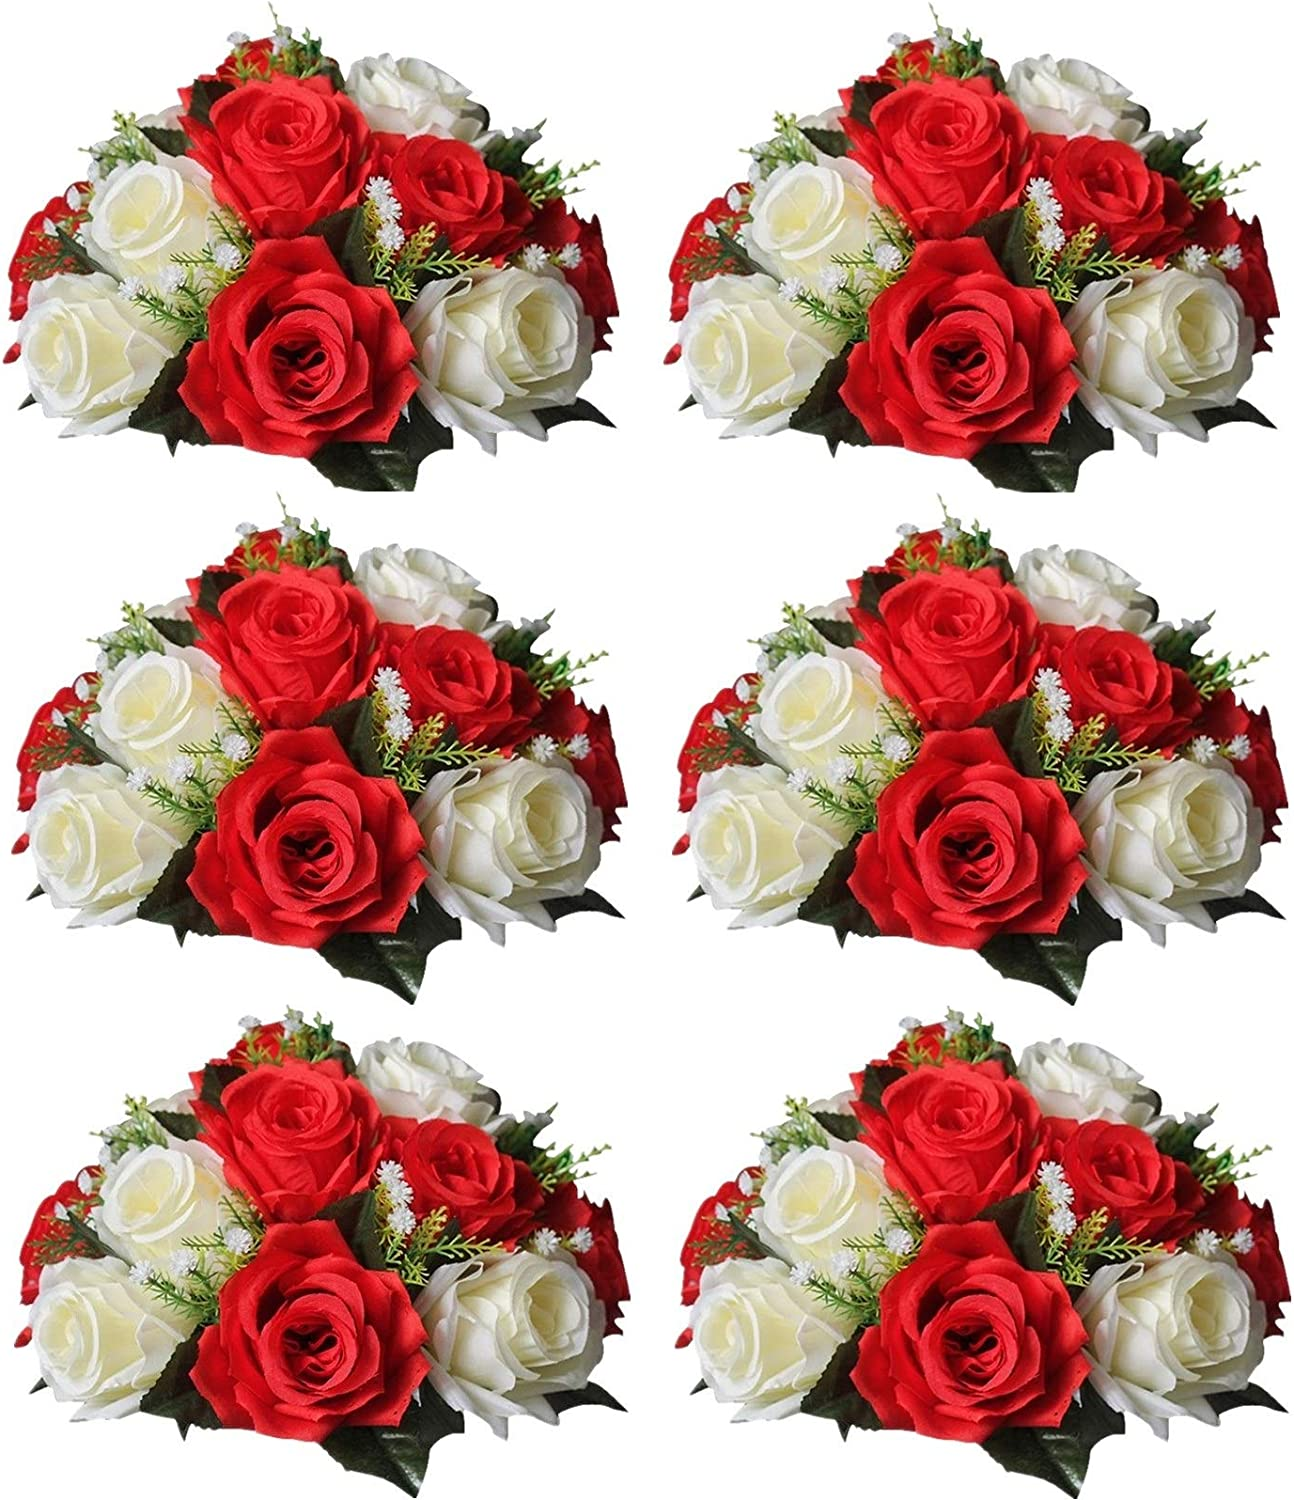 Sziqiqi Artificial Flowers Safety and trust New life Silk Centerp Wedding for Rose